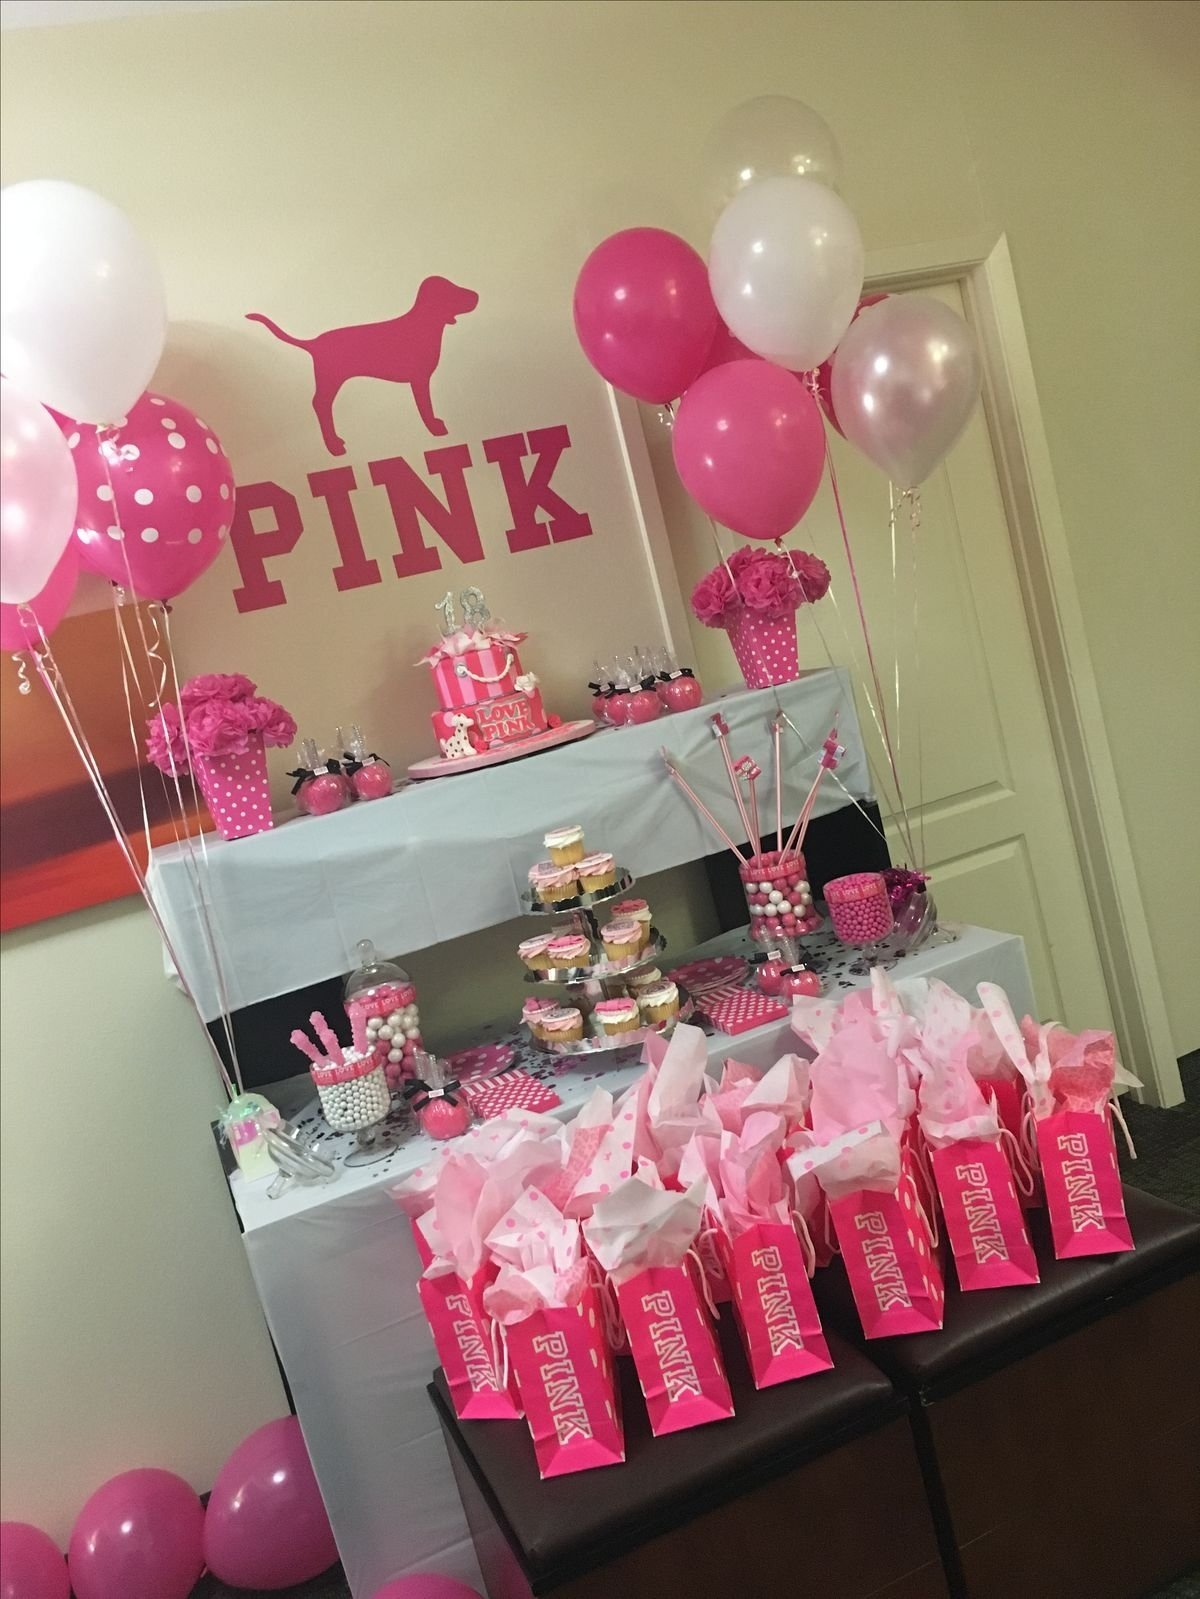 10 Nice 13 Year Old Birthday Party Ideas For Girls themes birthday ideas for a 16th birthday party for a girl in the 2 2021